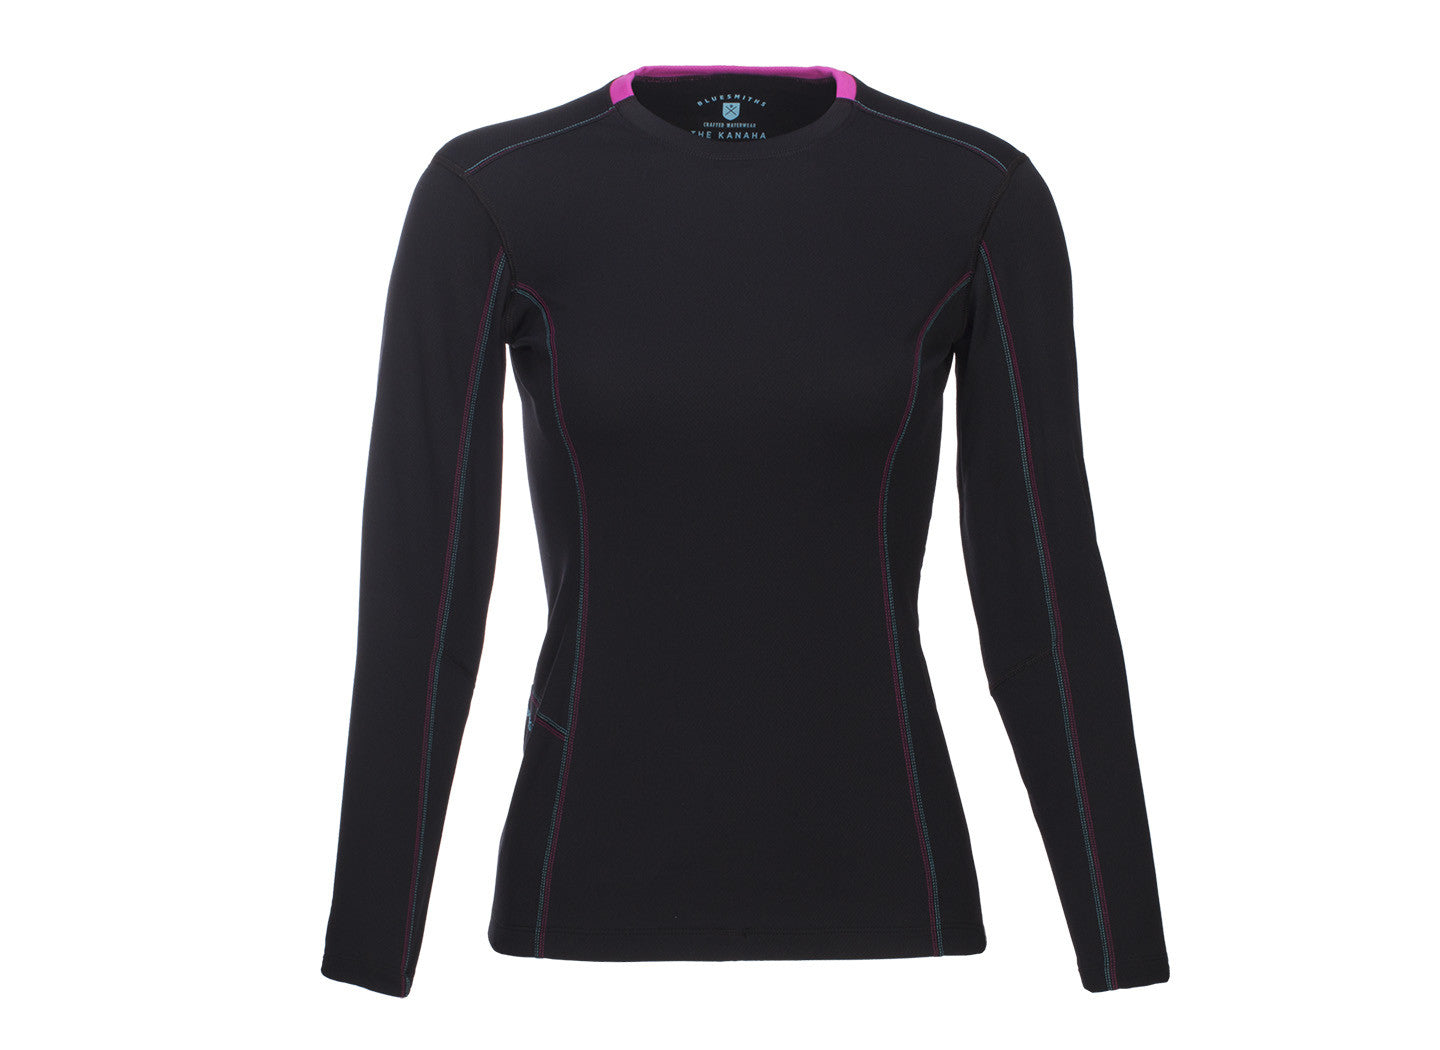 0c6e130daa73f9 The Kanaha Hydrophobic Shirt for Women in Black (Hibiscus Pink) - The  World s Finest ...